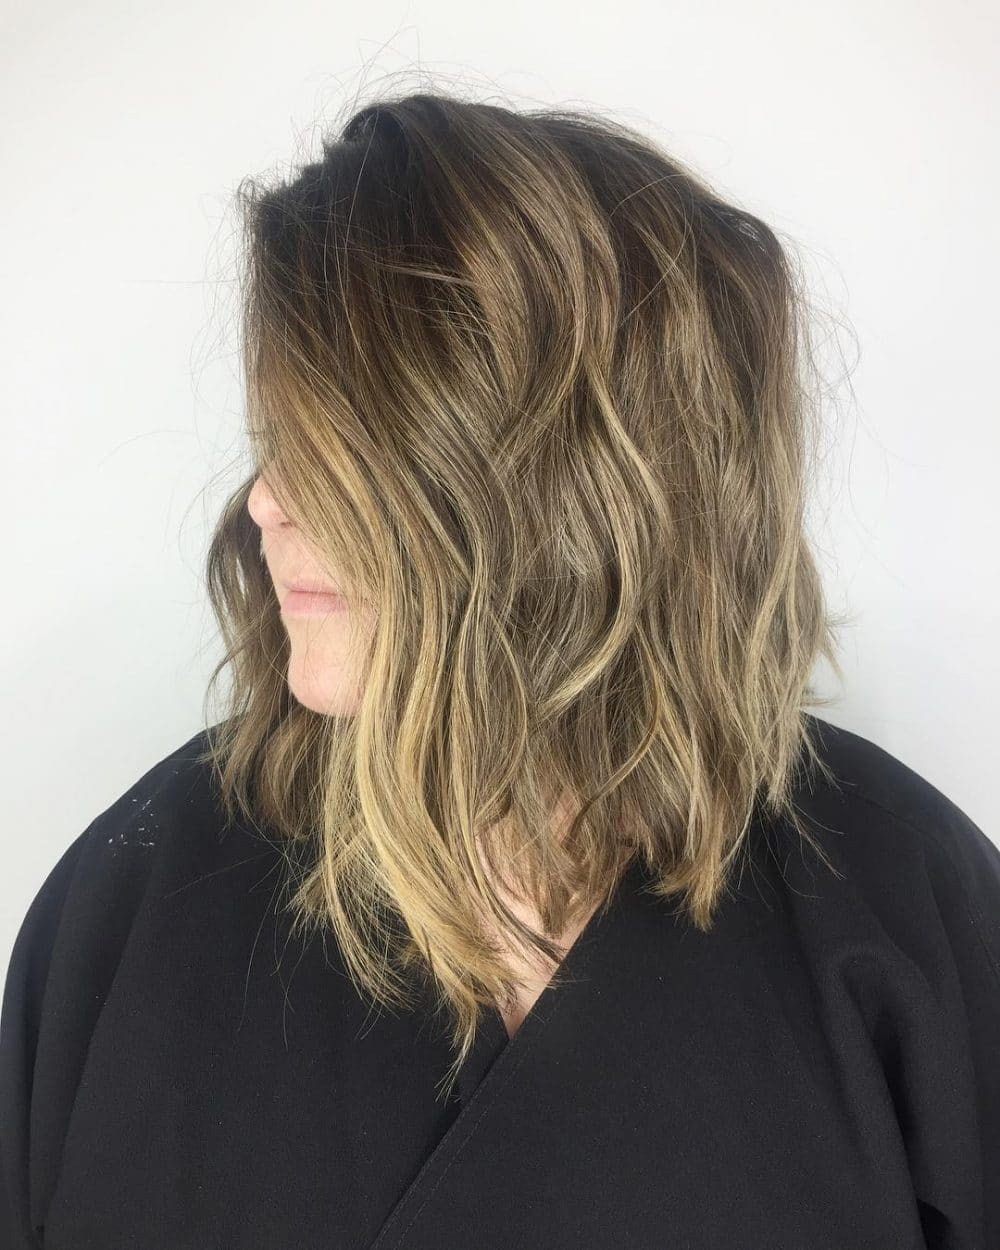 Lived-In Lob hairstyle